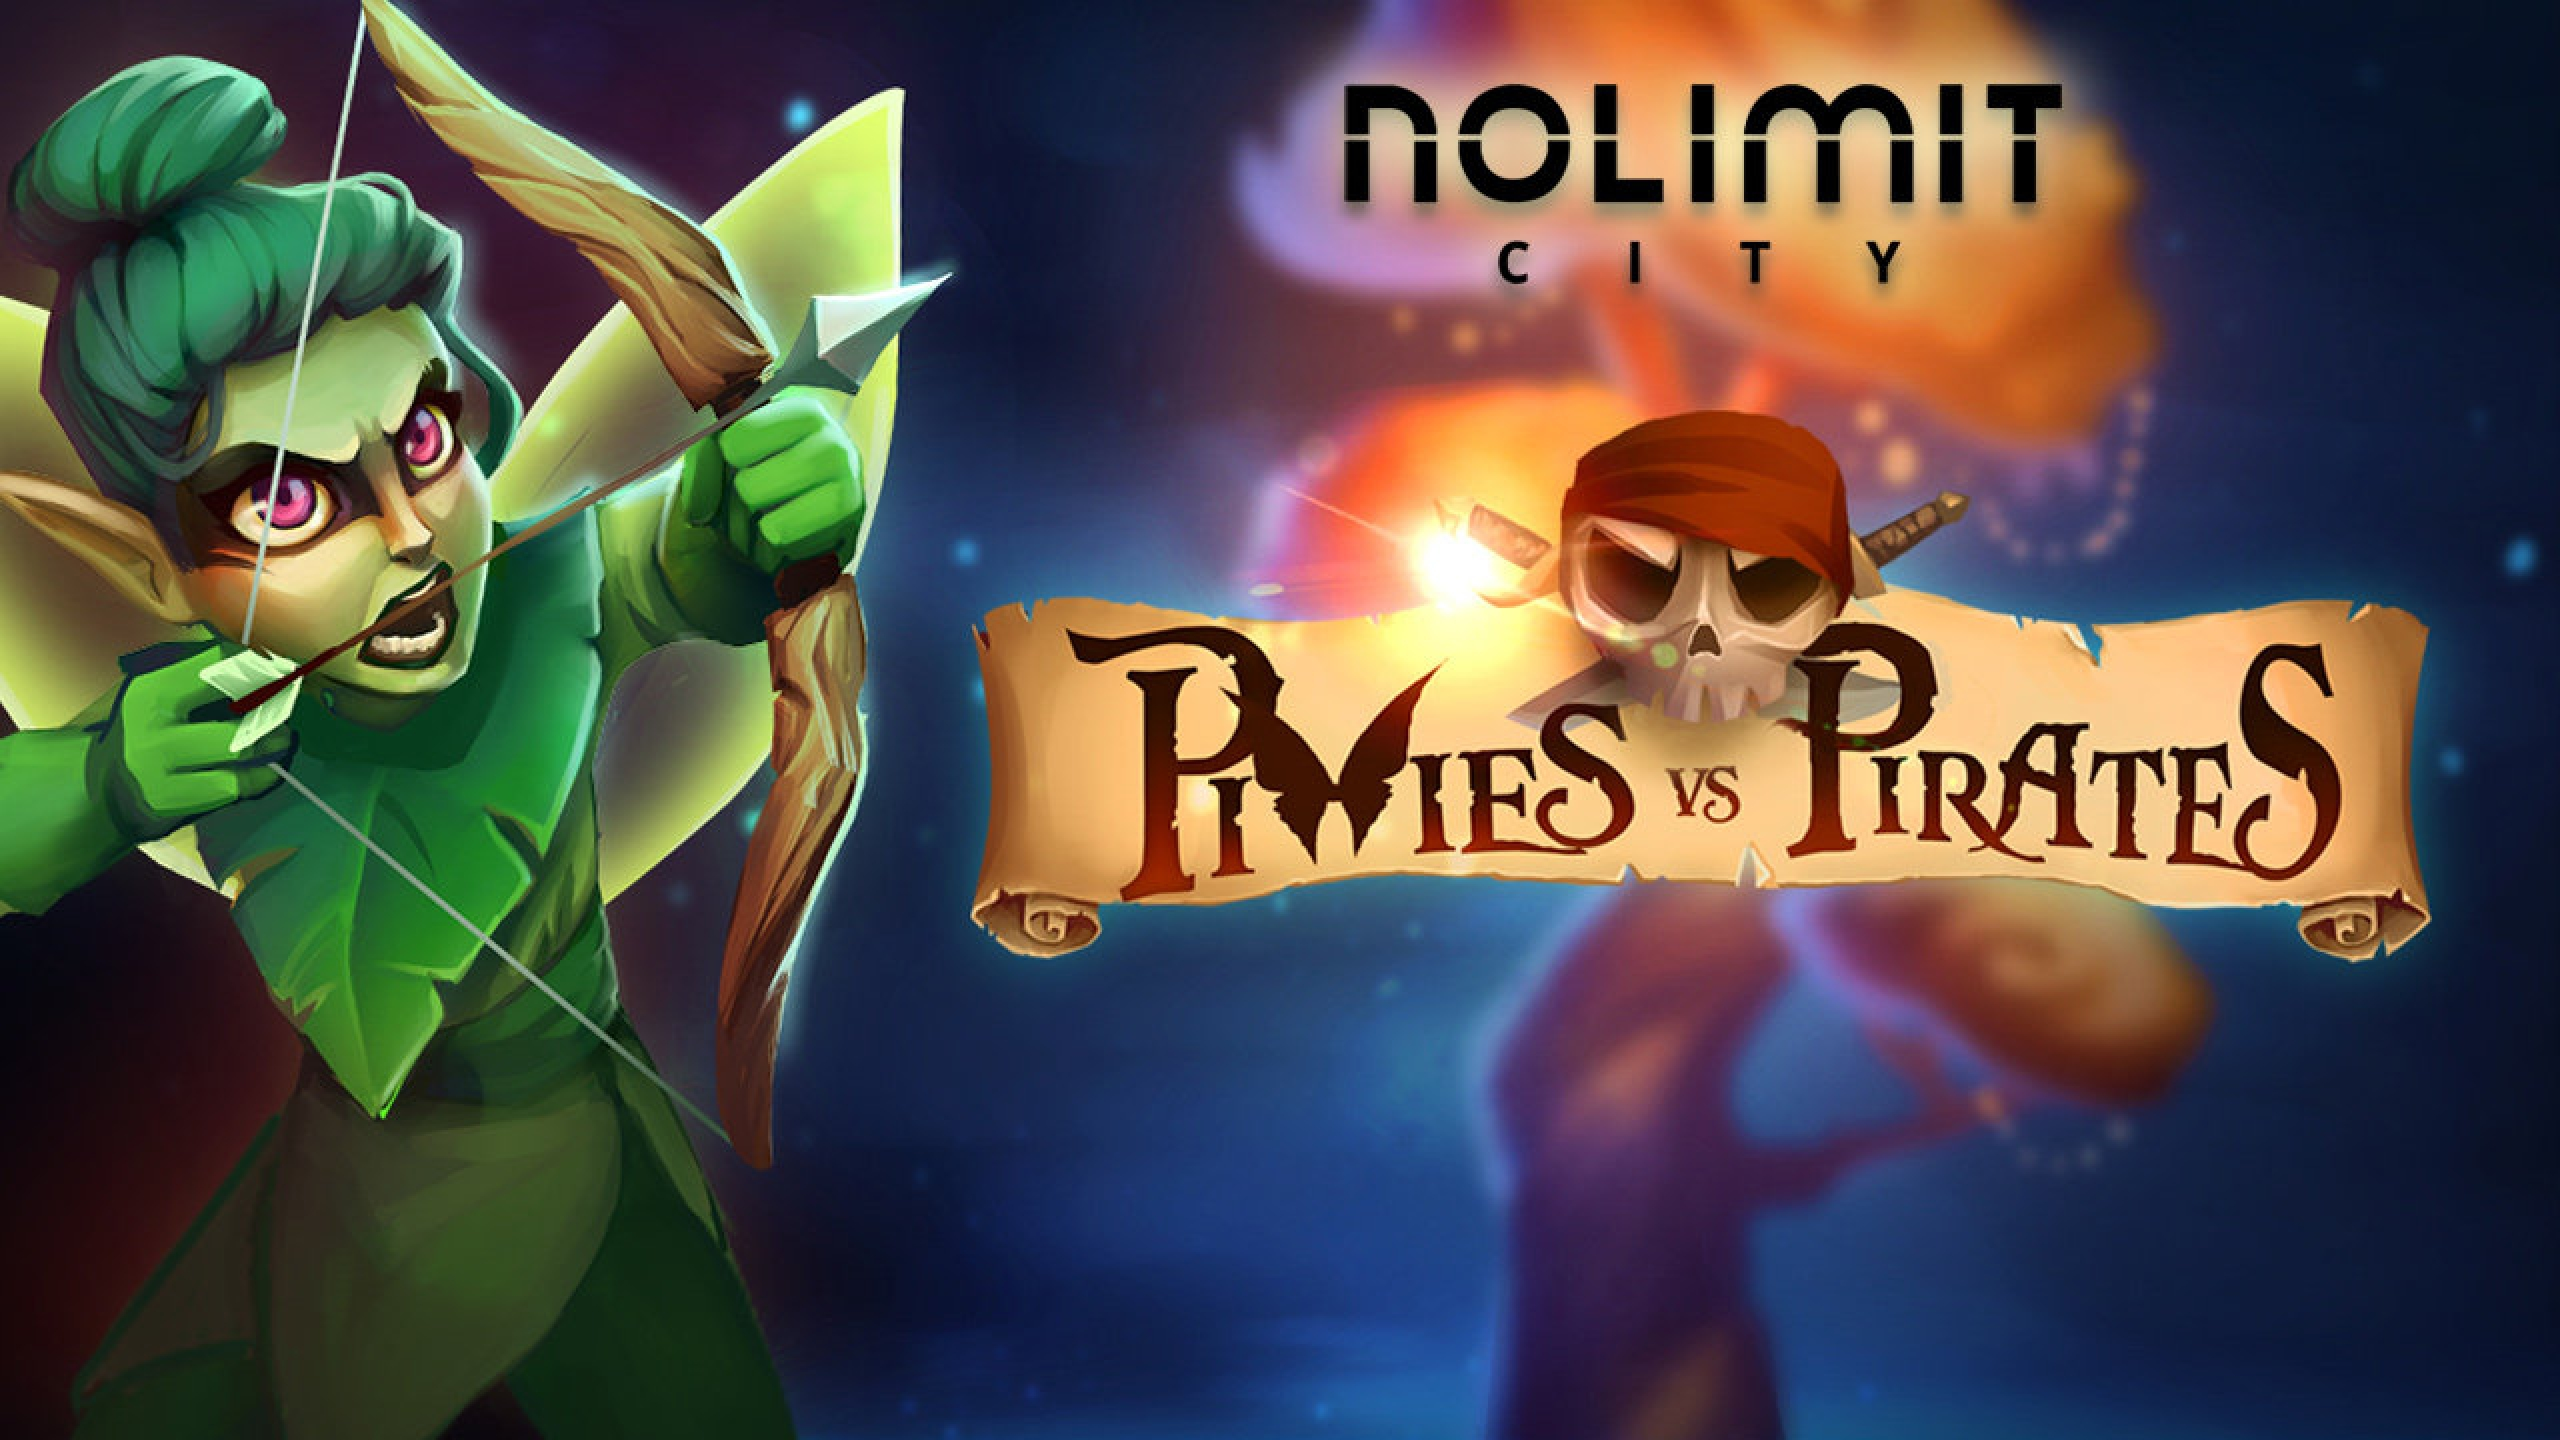 The Pixies Vs Pirates Online Slot Demo Game by Nolimit City